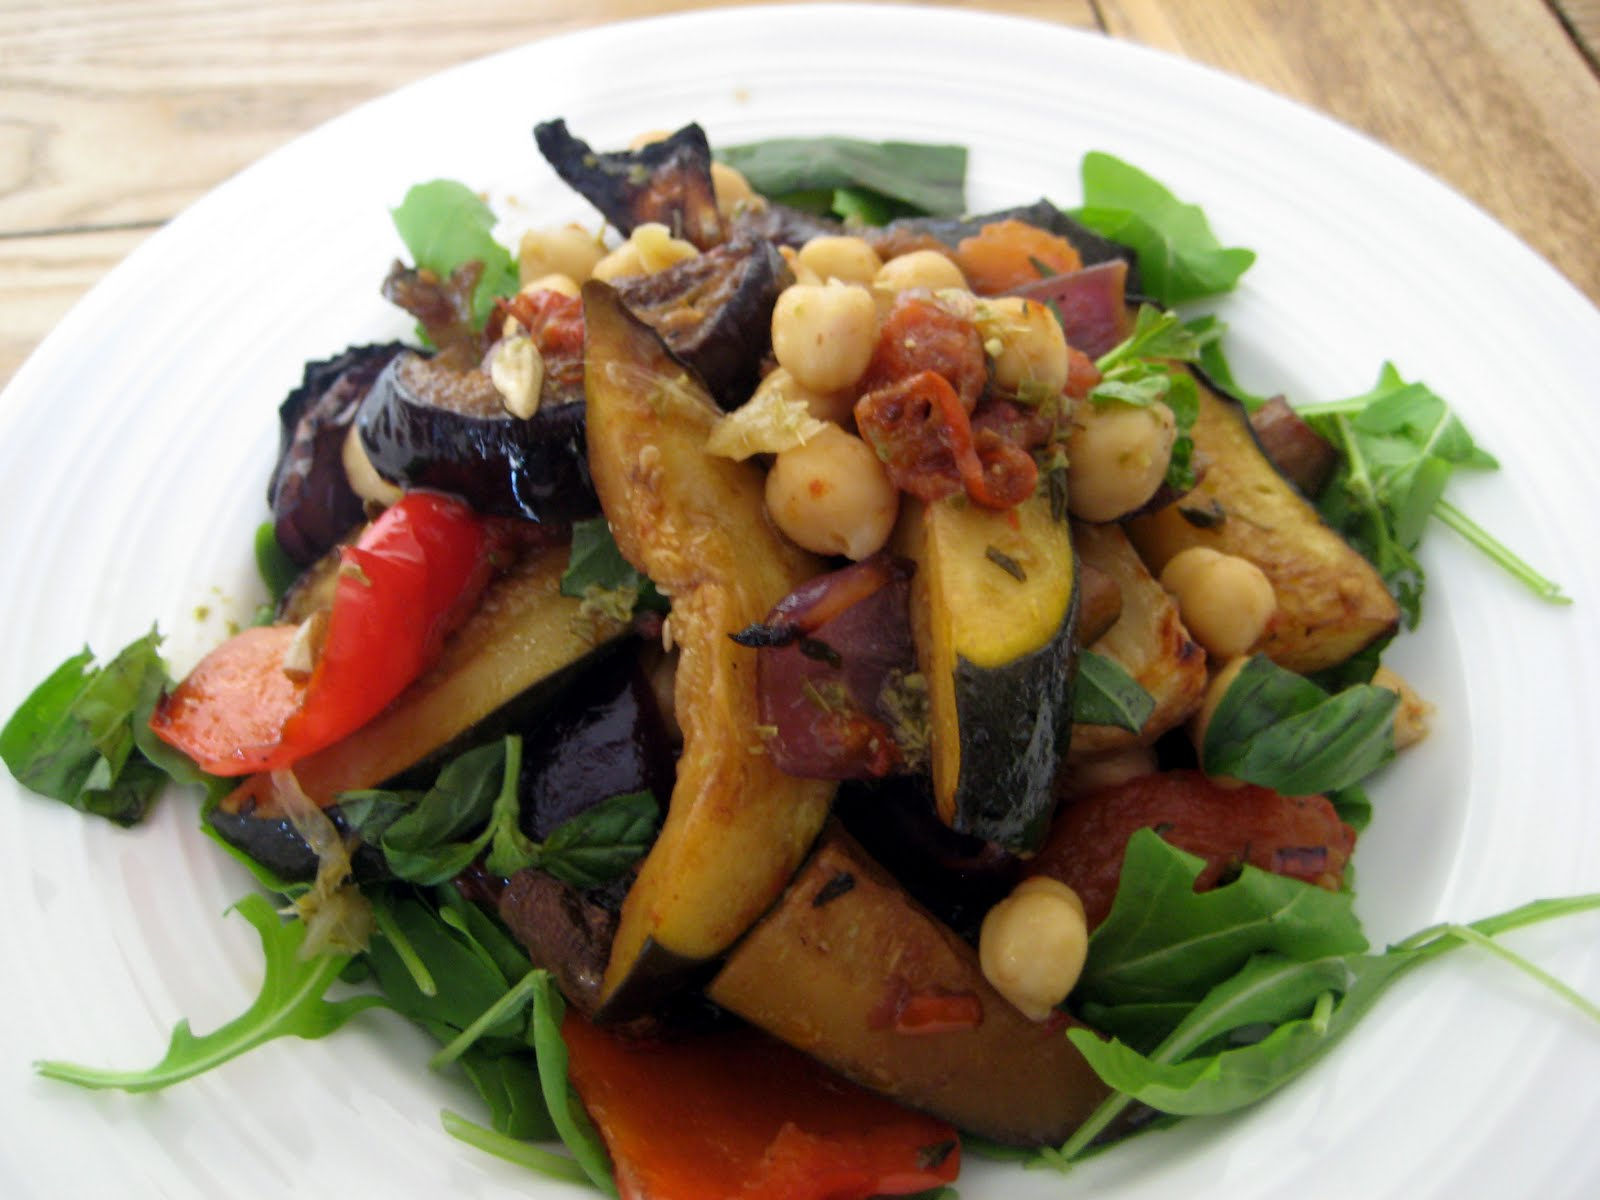 roast mediterranean vegetable salad with roasted garlic pesto dressing